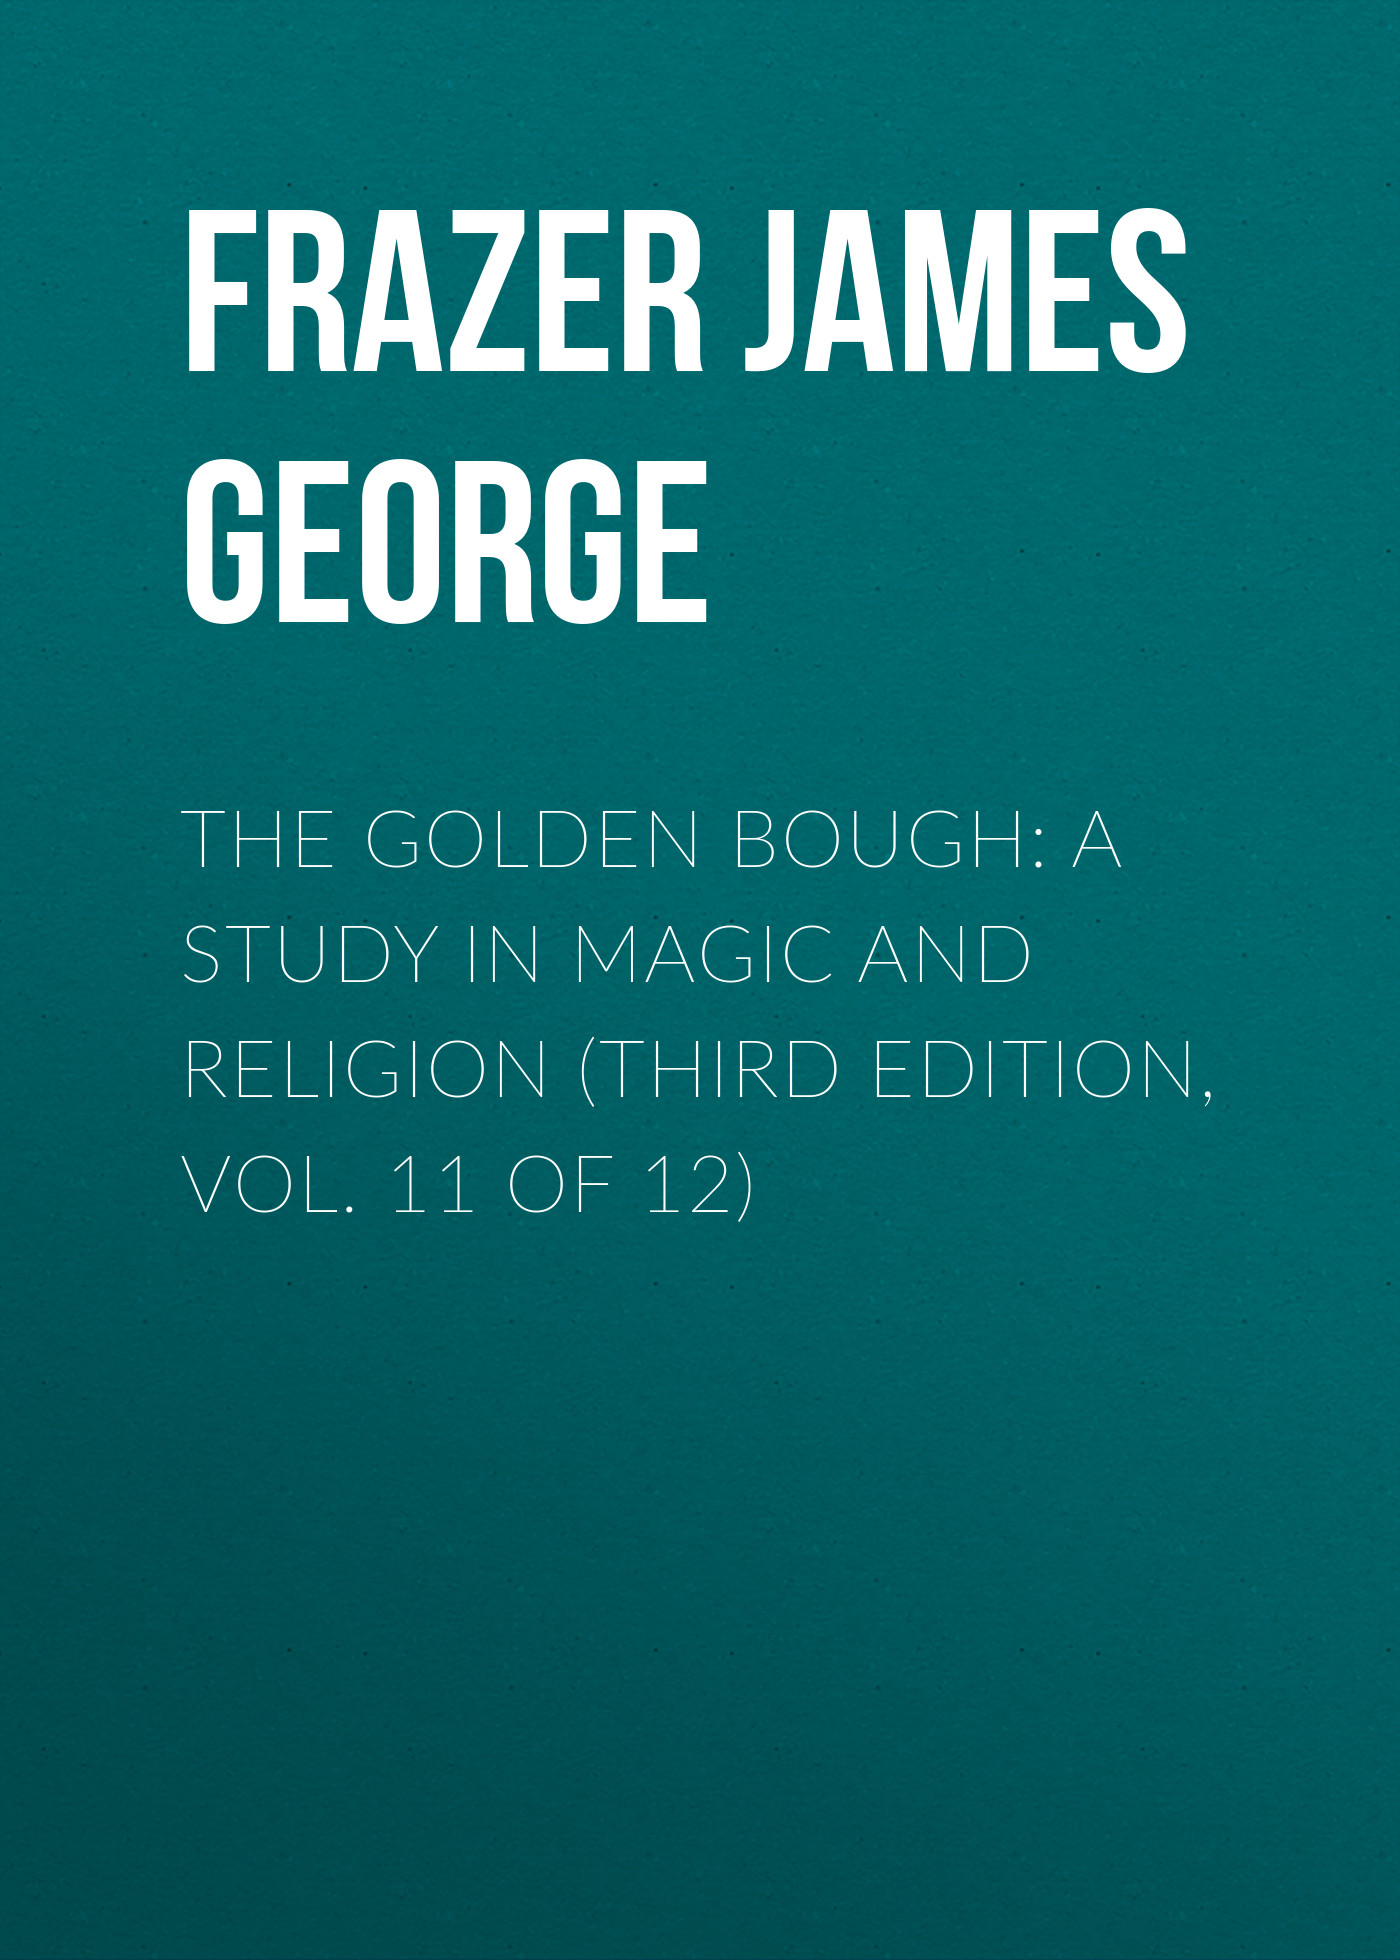 Frazer James George The Golden Bough: A Study in Magic and Religion (Third Edition, Vol. 11 of 12)